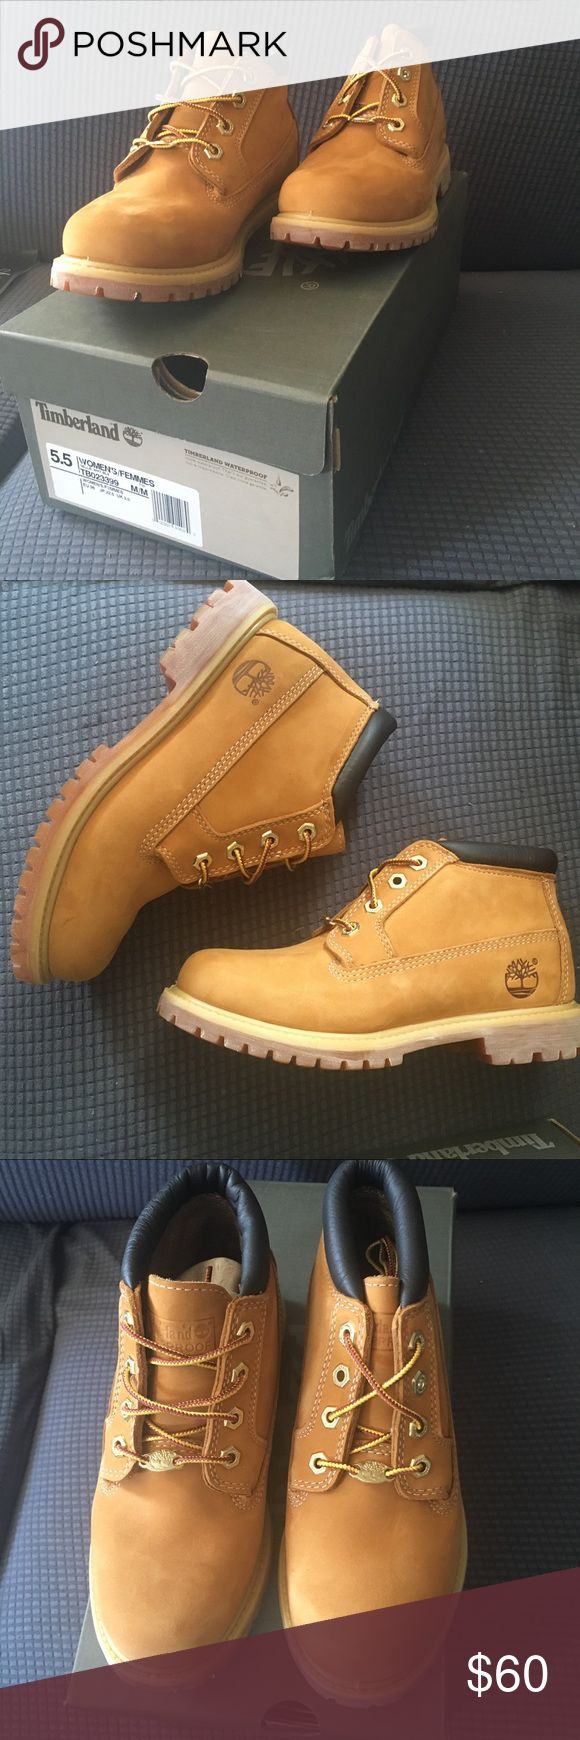 Wheat/Tan Timberland Femme Boots Brand new never worn Wheat/Tan/Camel Timberland Femme Boots, short bootie ankle, size US 5.5 and EU 36. Comes in box with all original packing/wrapping Timberland Shoes Ankle Boots & Booties